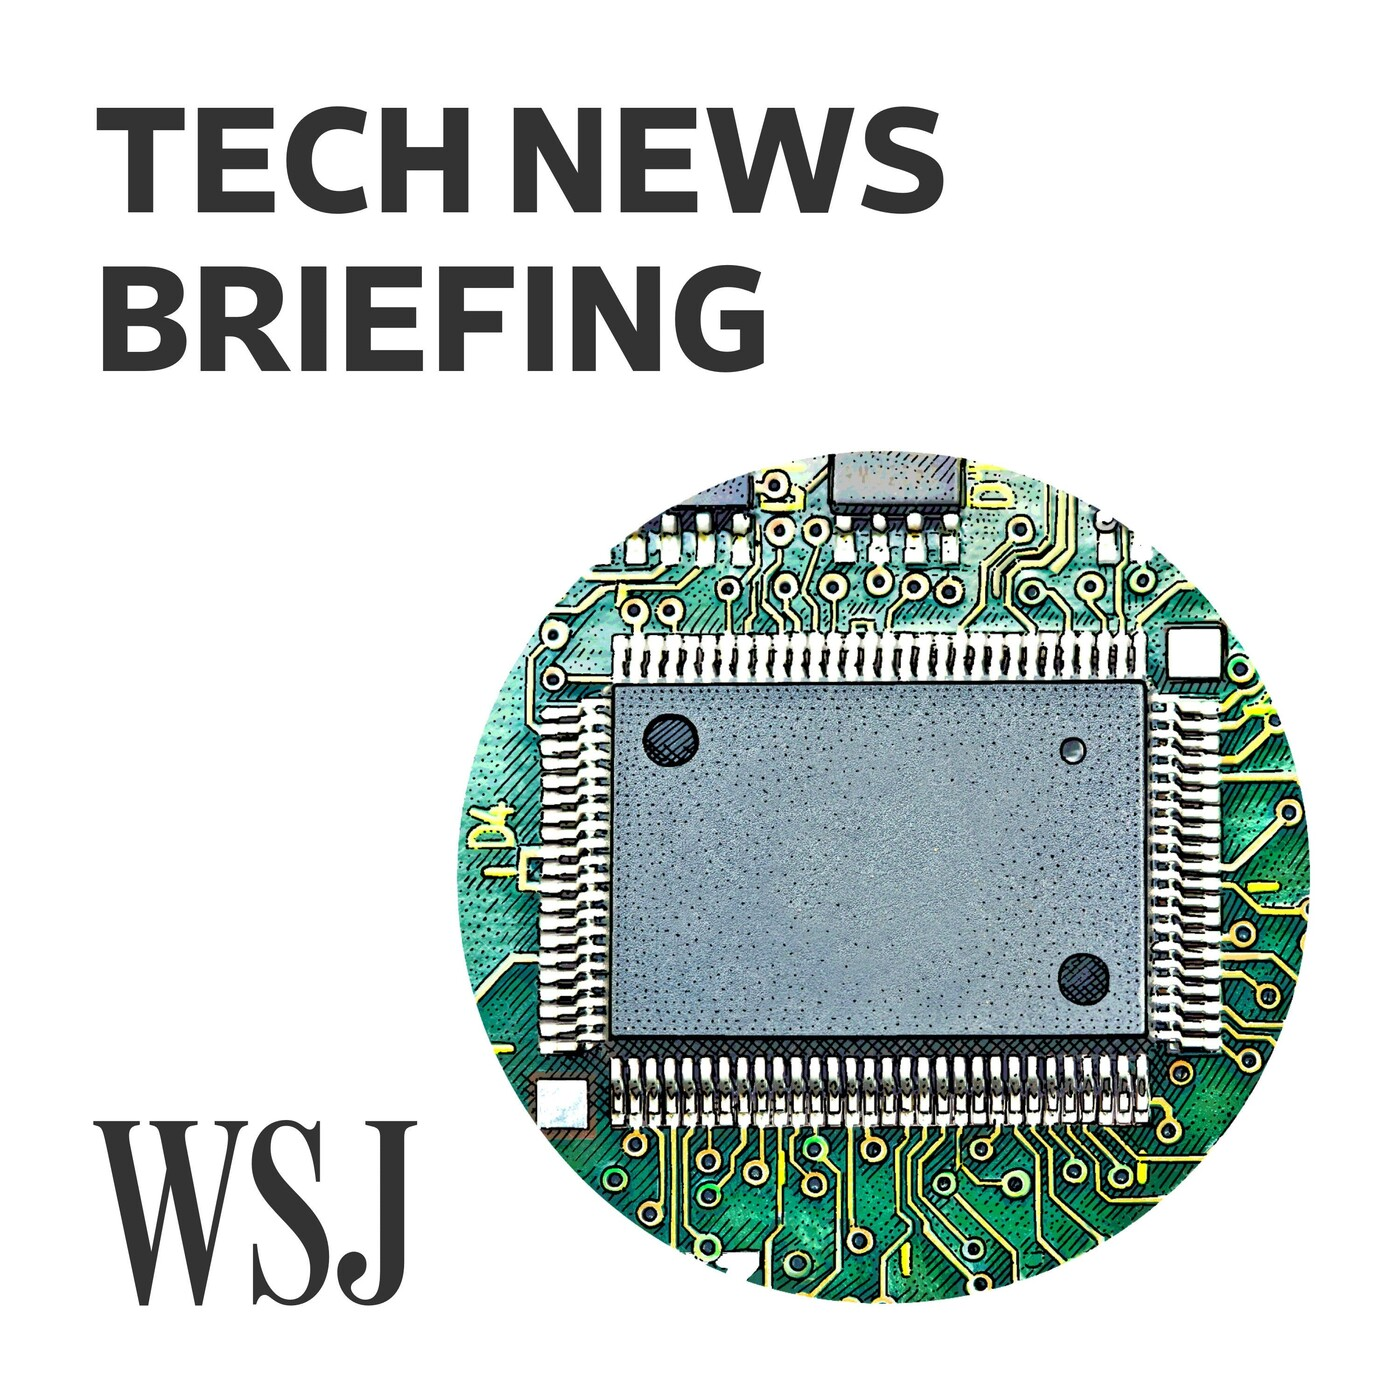 WSJ Tech Briefing Early Edition, April 19, 2012